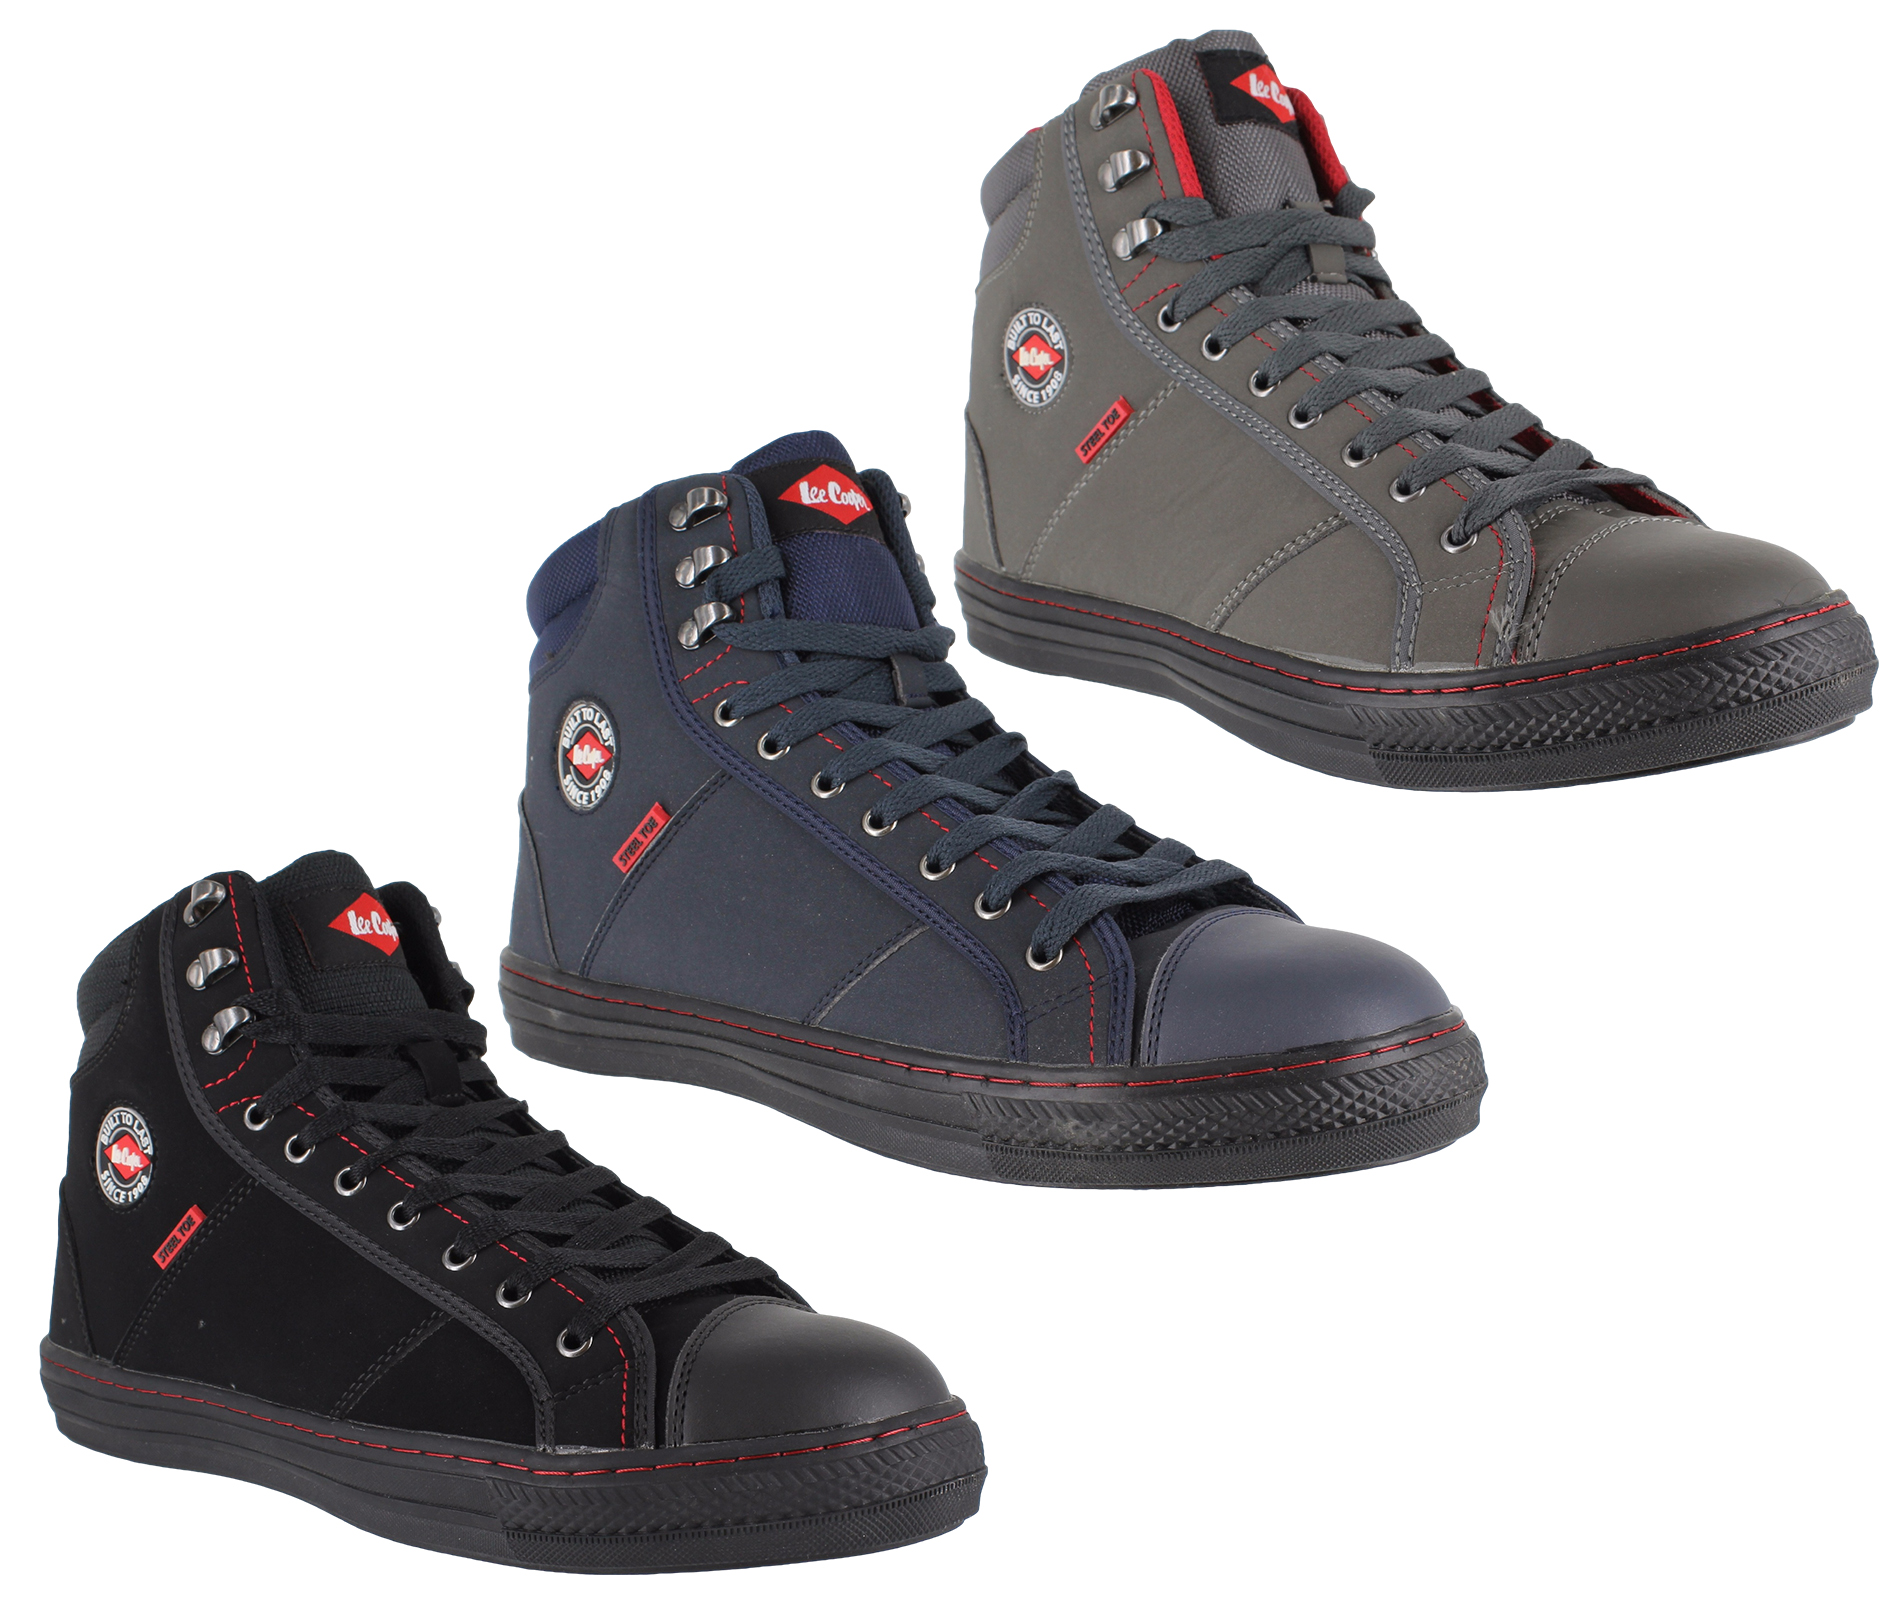 2eb401e37 Details about Mens Womens Lee Cooper Steel Toe SB Safety Baseball Boots  High Top Sizes 3 to 12